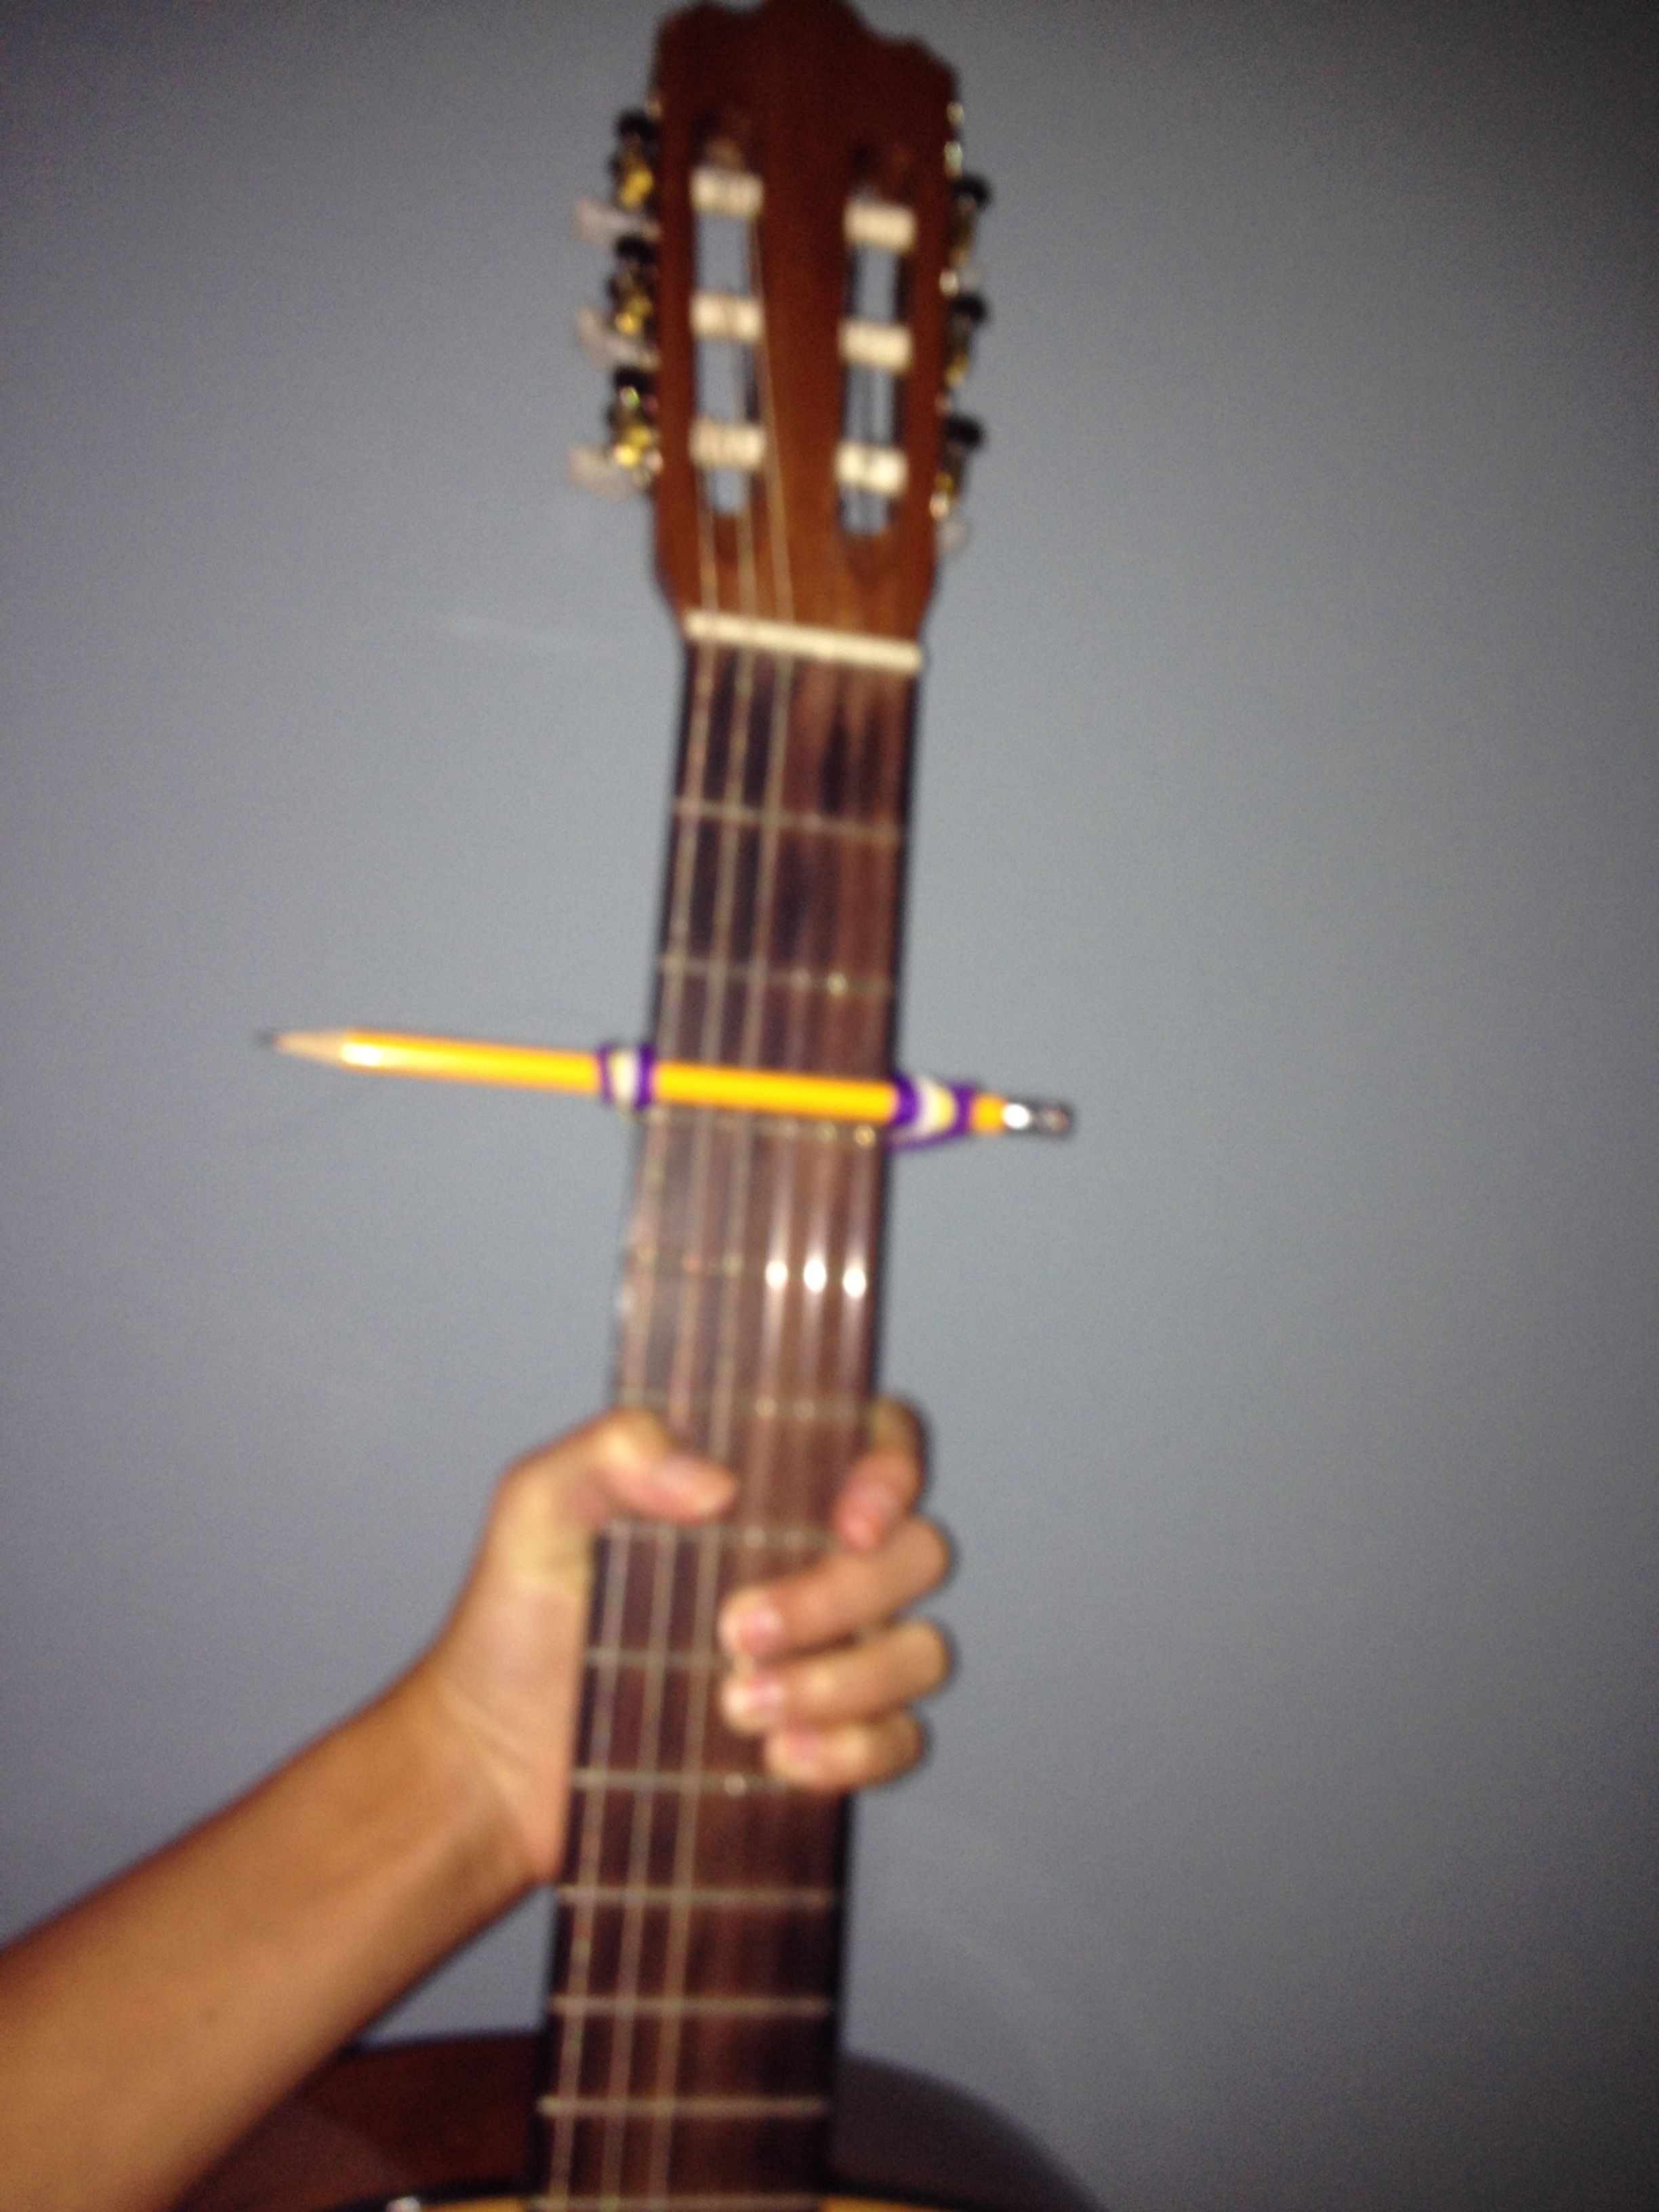 Diy Capo For Guitar Ok So I Just Ordered A Capo Off Amazon